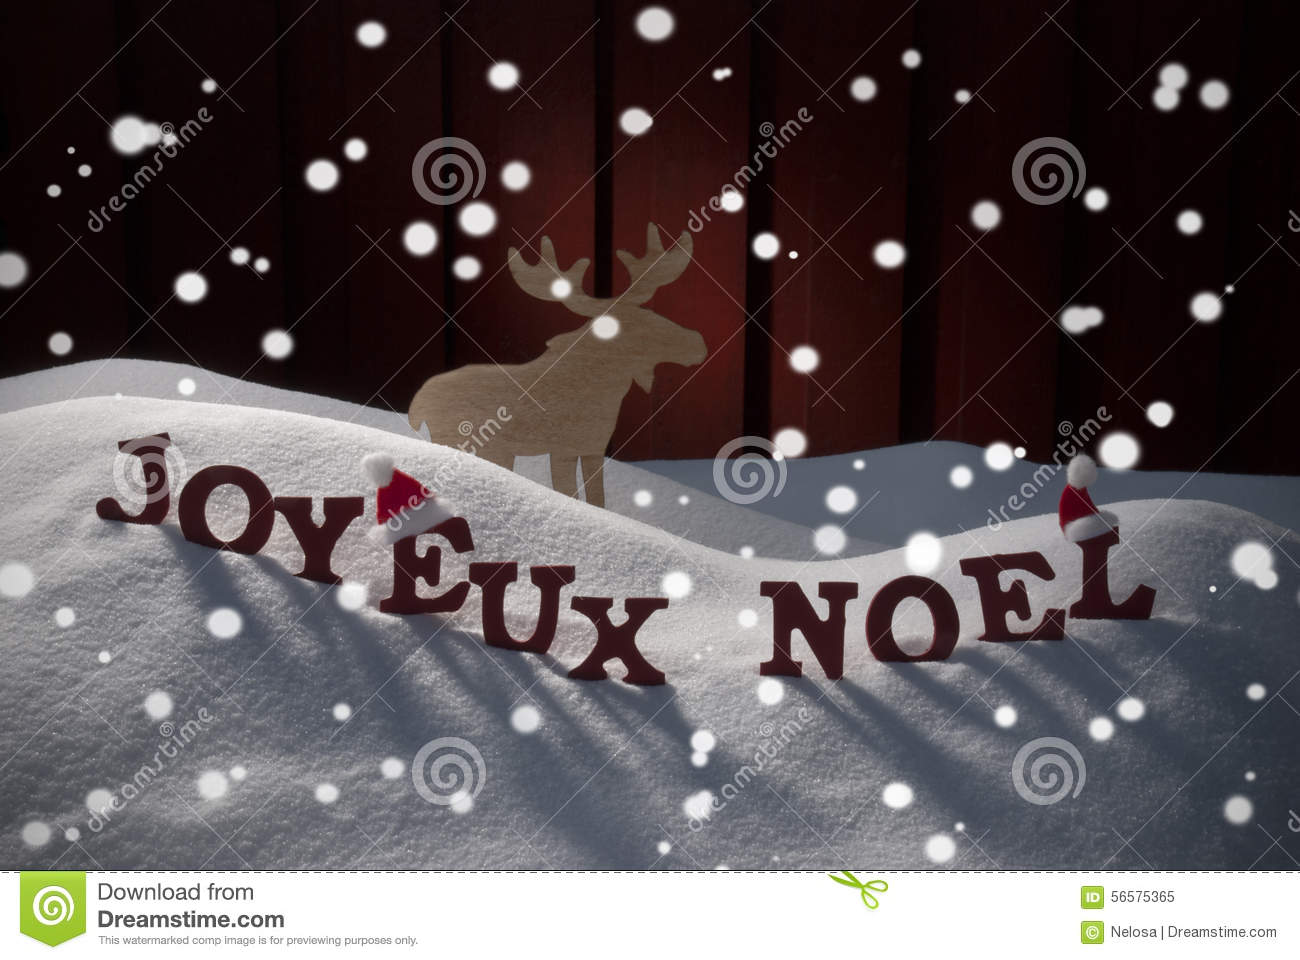 joyeux noel means merry christmas with moose stock photo. Black Bedroom Furniture Sets. Home Design Ideas